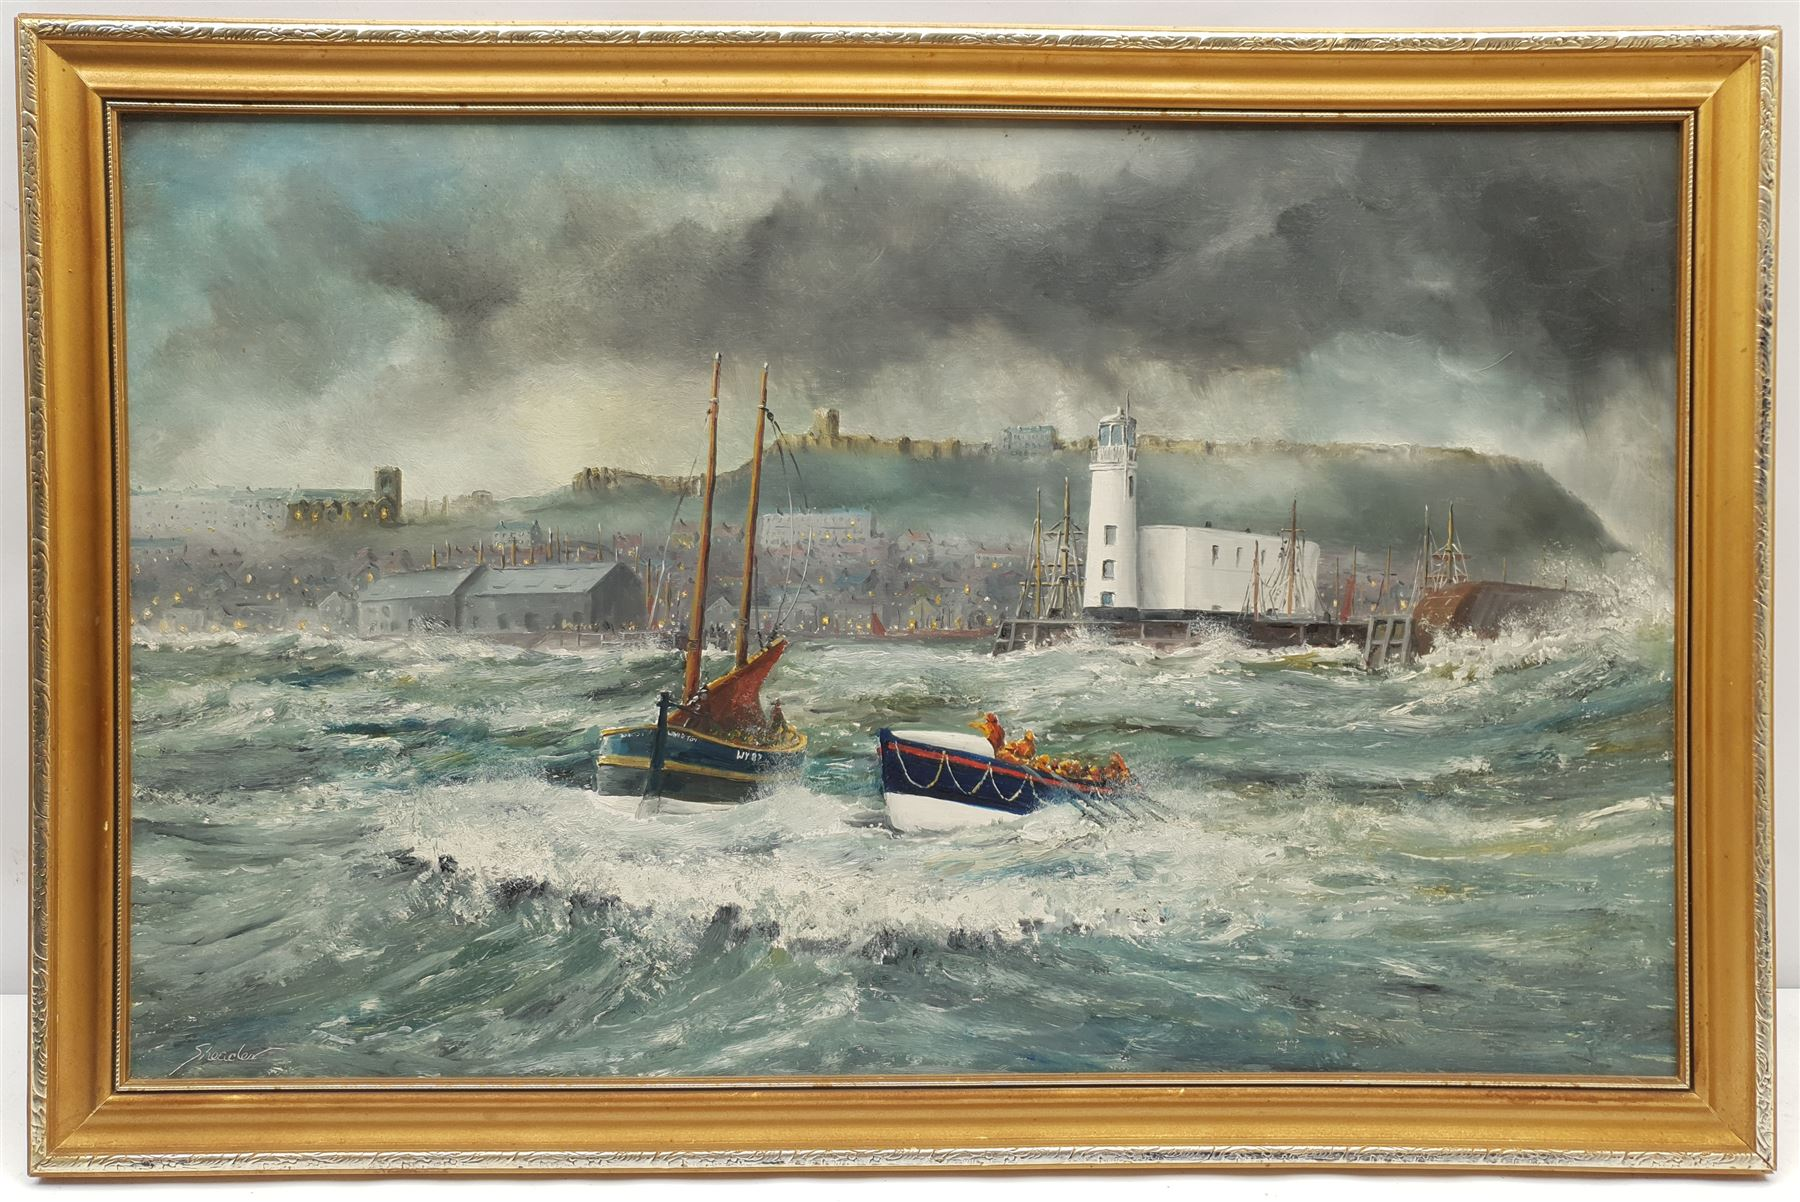 Robert Sheader (British 20th century): Lifeboat to the Rescue of a Whitby Fishing Boat - Image 2 of 2